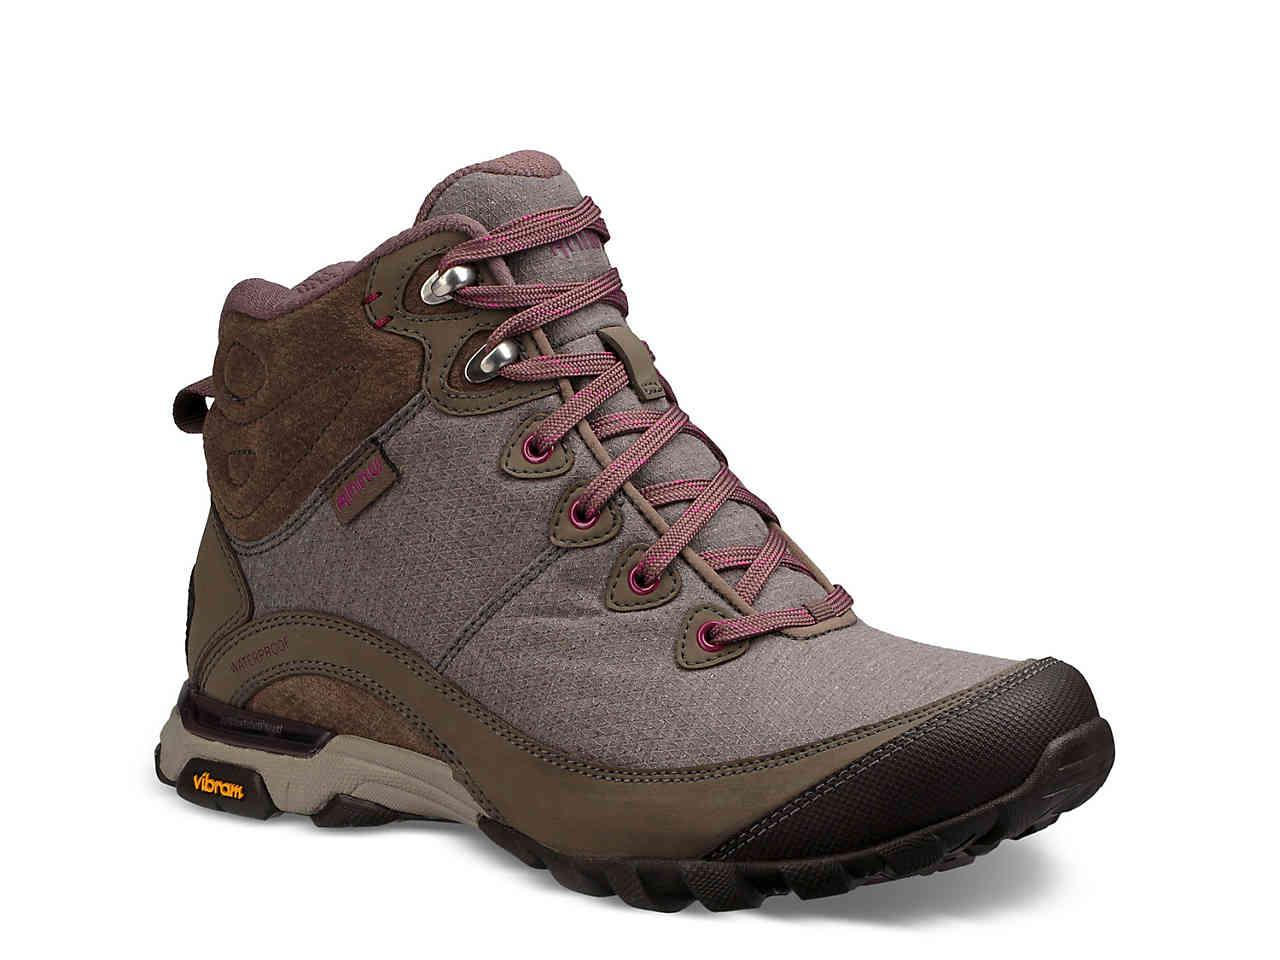 d1a39008d6dab Lyst - Teva Sugarpine Ii Hiking Boot in Brown for Men - Save 1%